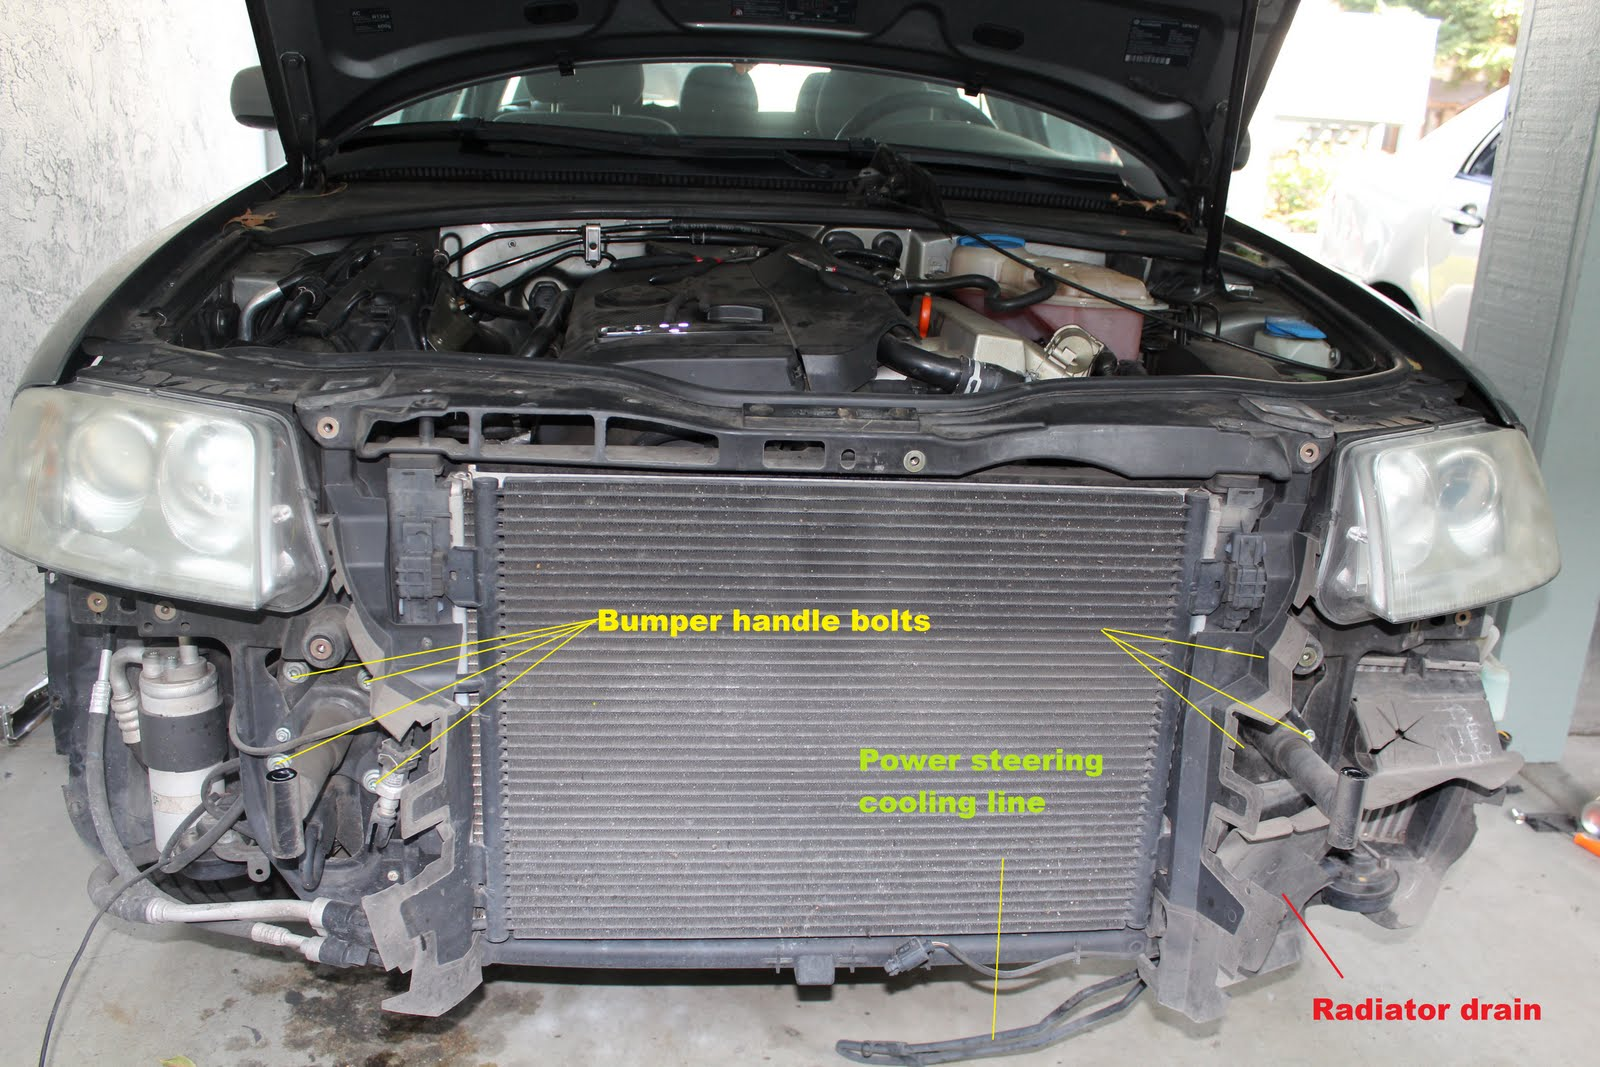 Vaccum Diagram Audi A4 18t Passat18t Seshu 1998 1 8t Engine Be Careful Dont Screw Thisif U Do Will Have Problems Opening The Hood Later Removed Top Bumper Boltstwo That Hold Grill With Vw Sign